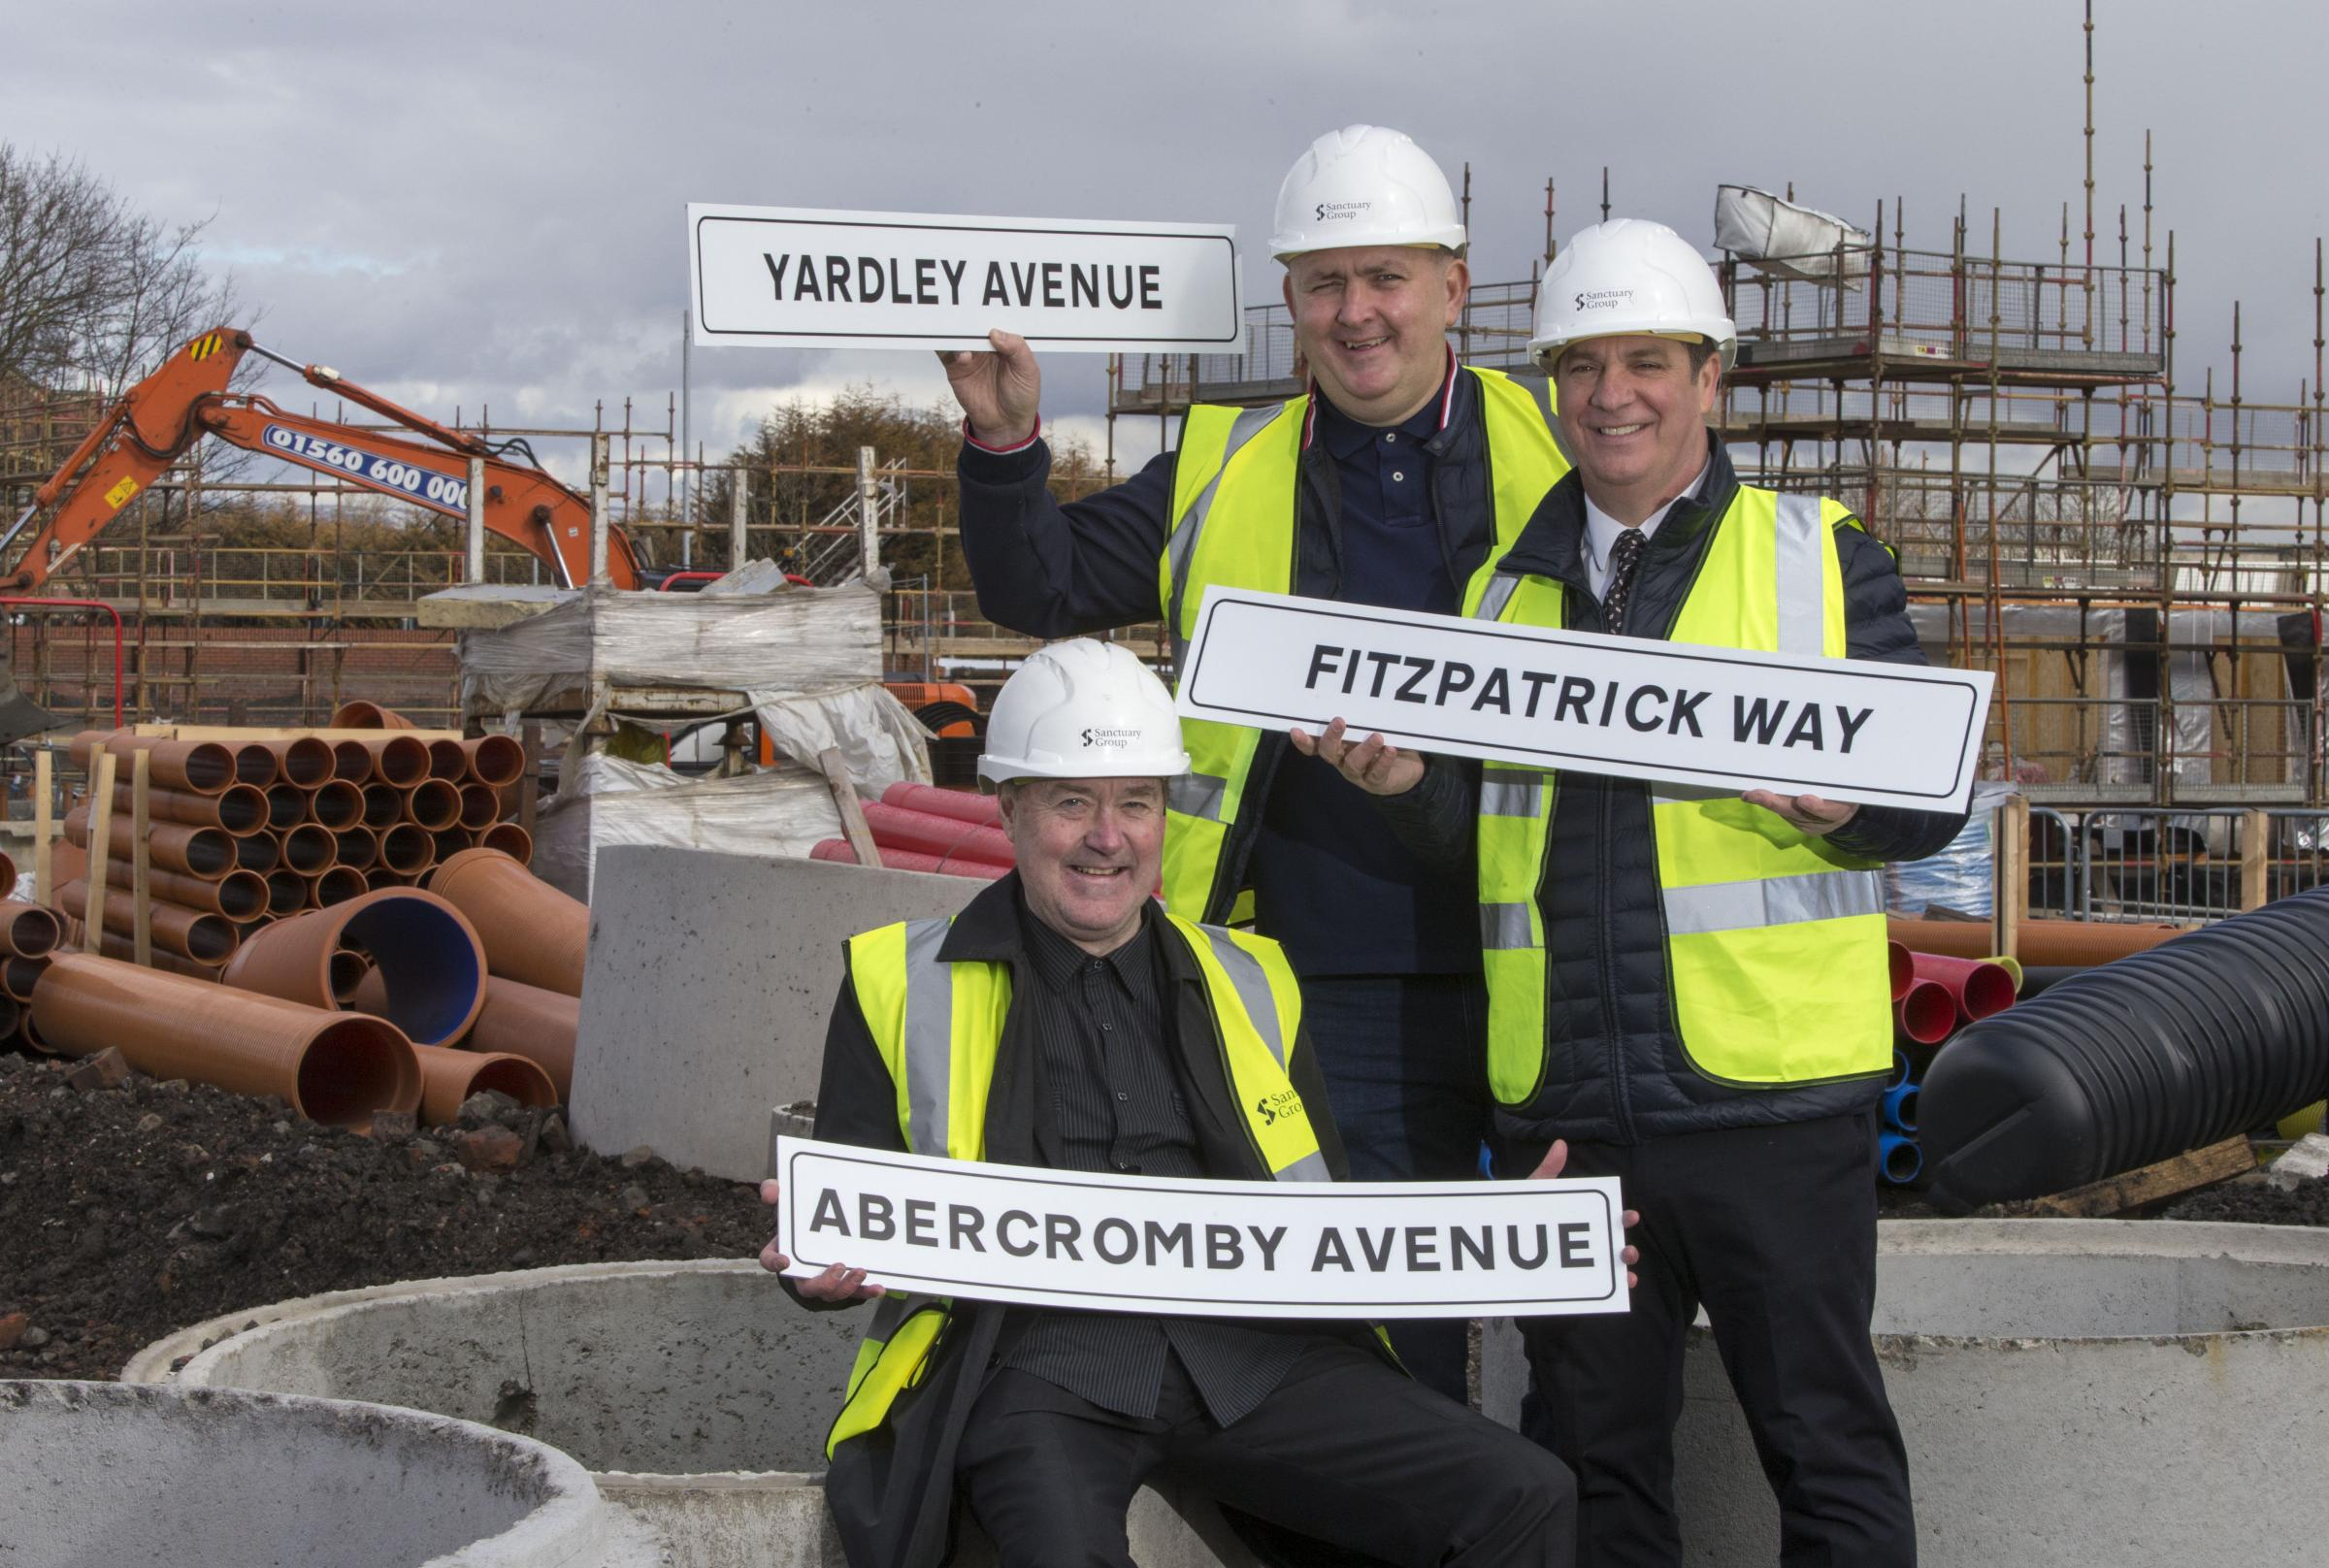 St Mirren legends Mark Yardley, Billy Abercomby and Tony Fitzpatrick's names will live forever on the old Love Street site